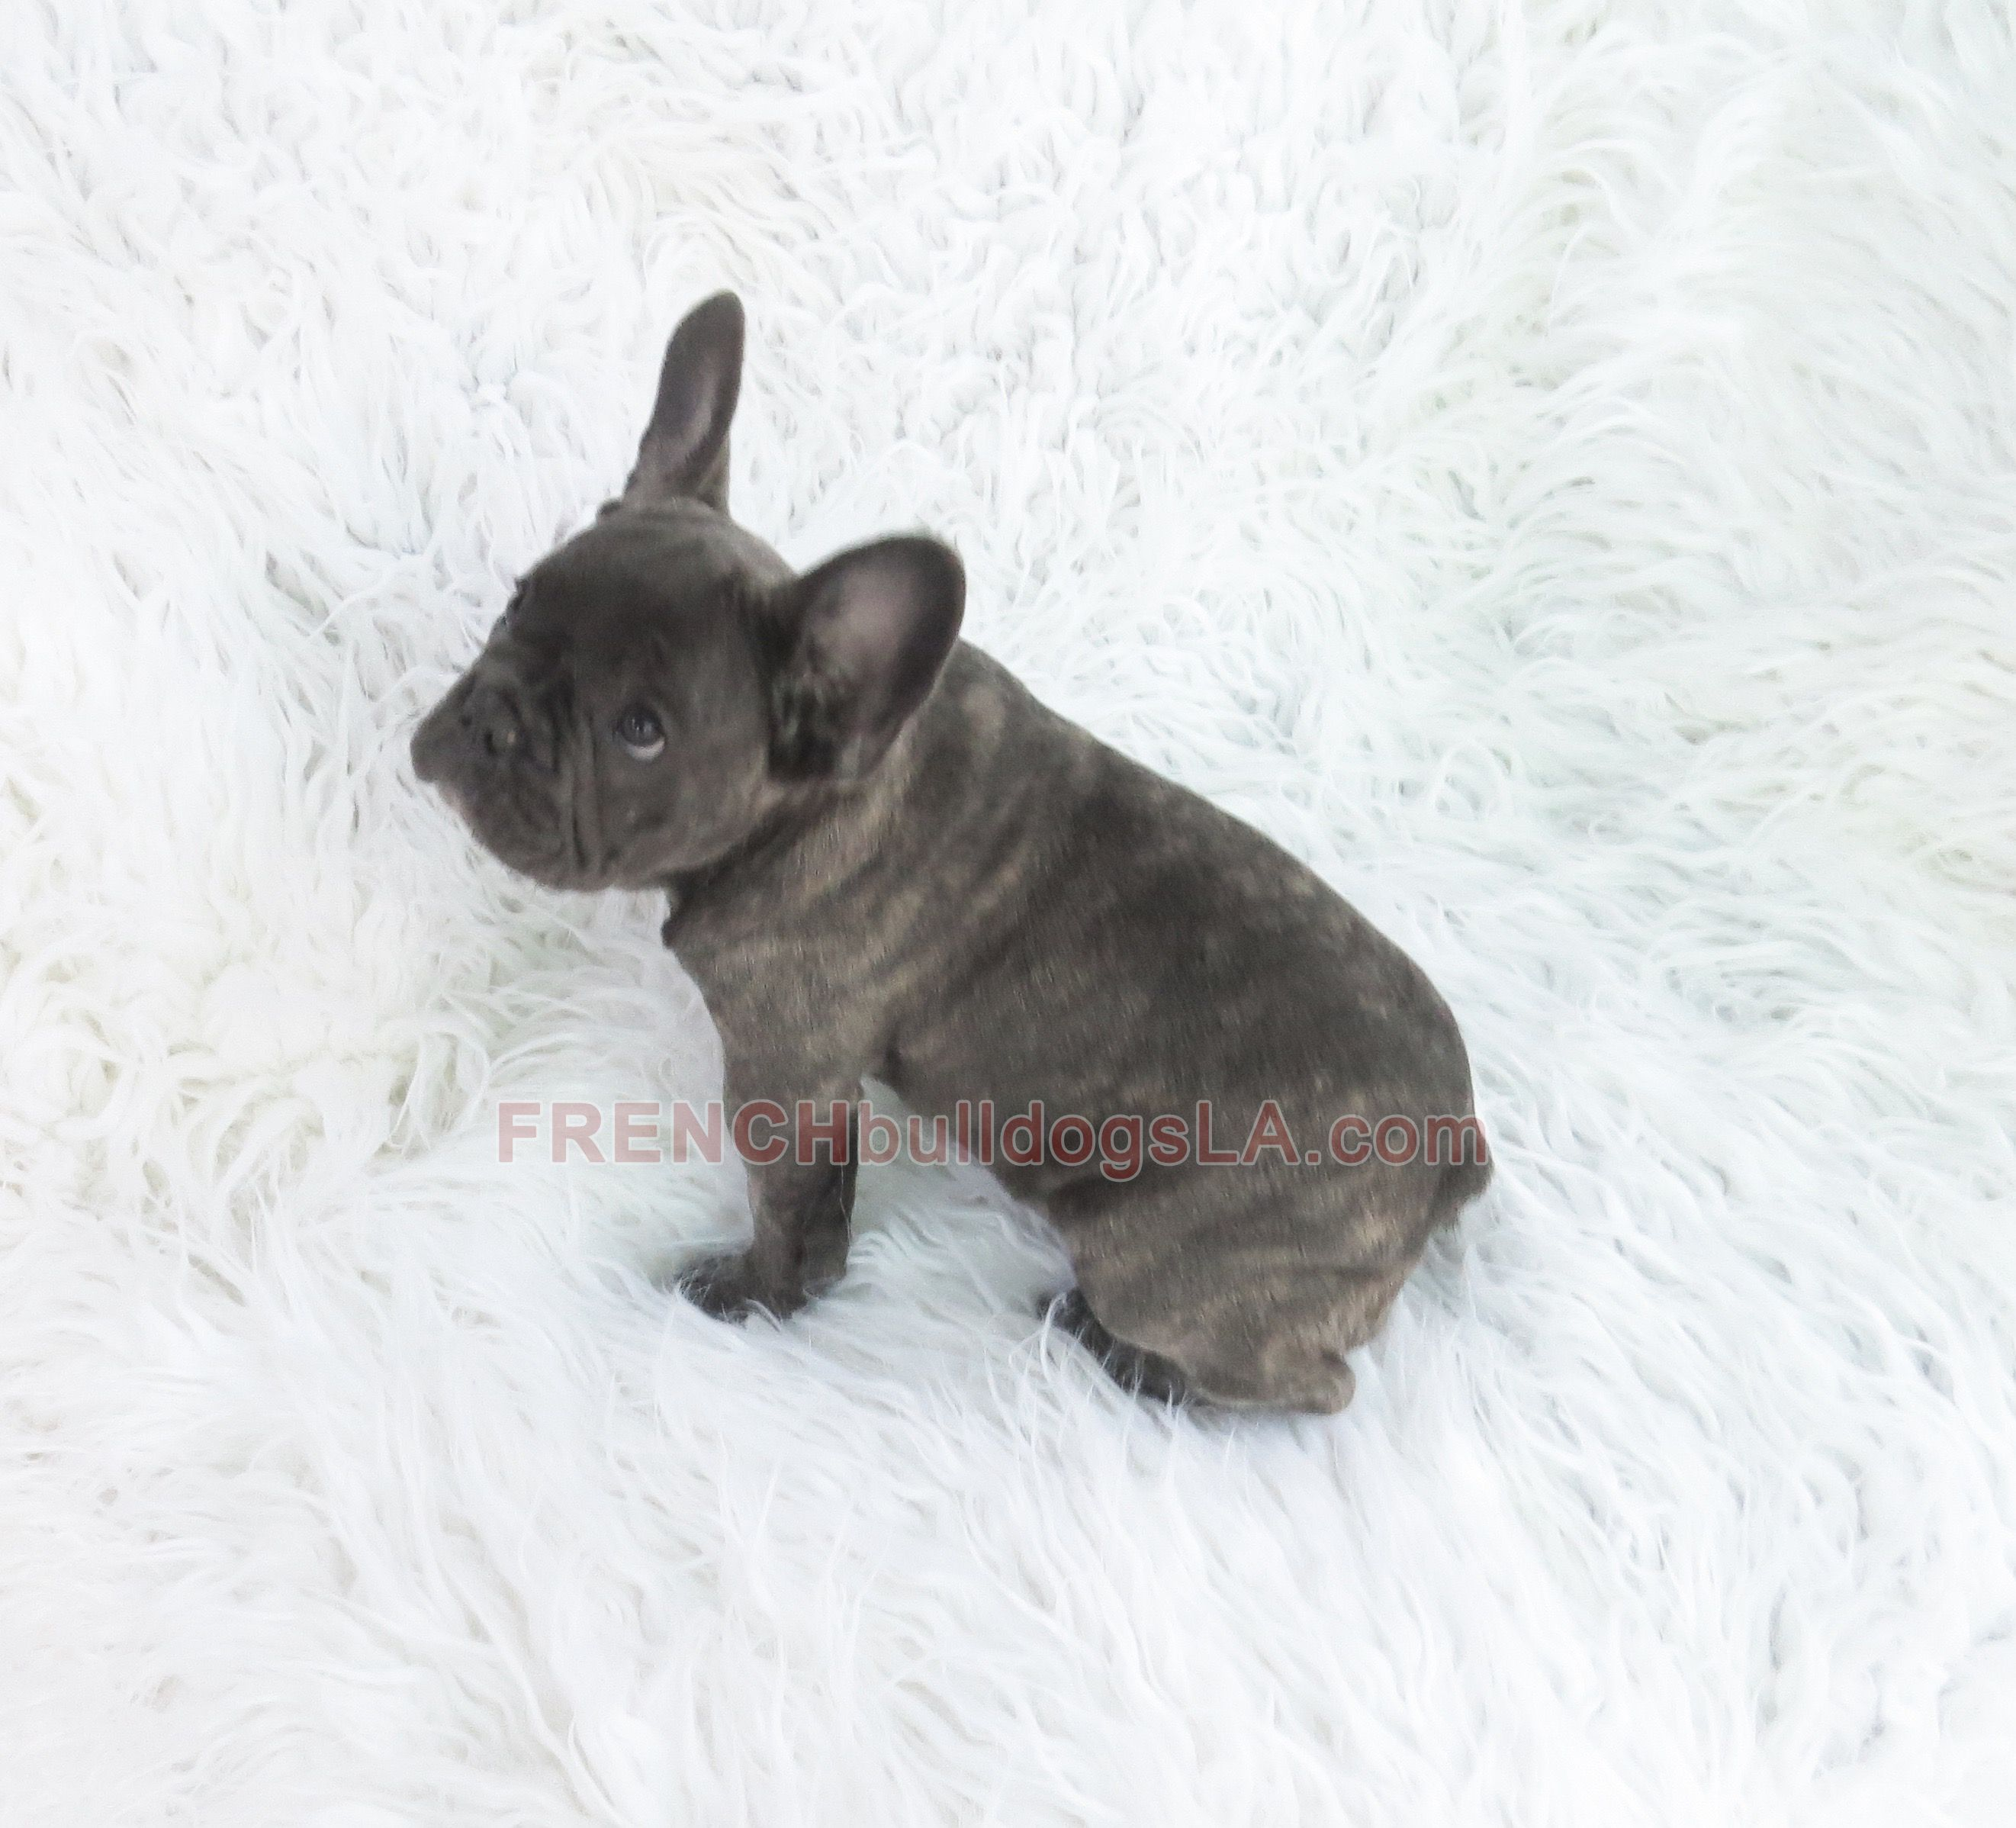 Blue French Bulldogs Breed Information Price Facts Loyal Or Not Where To Buy French Bulldog Blue White French Bulldog Puppies French Bulldog